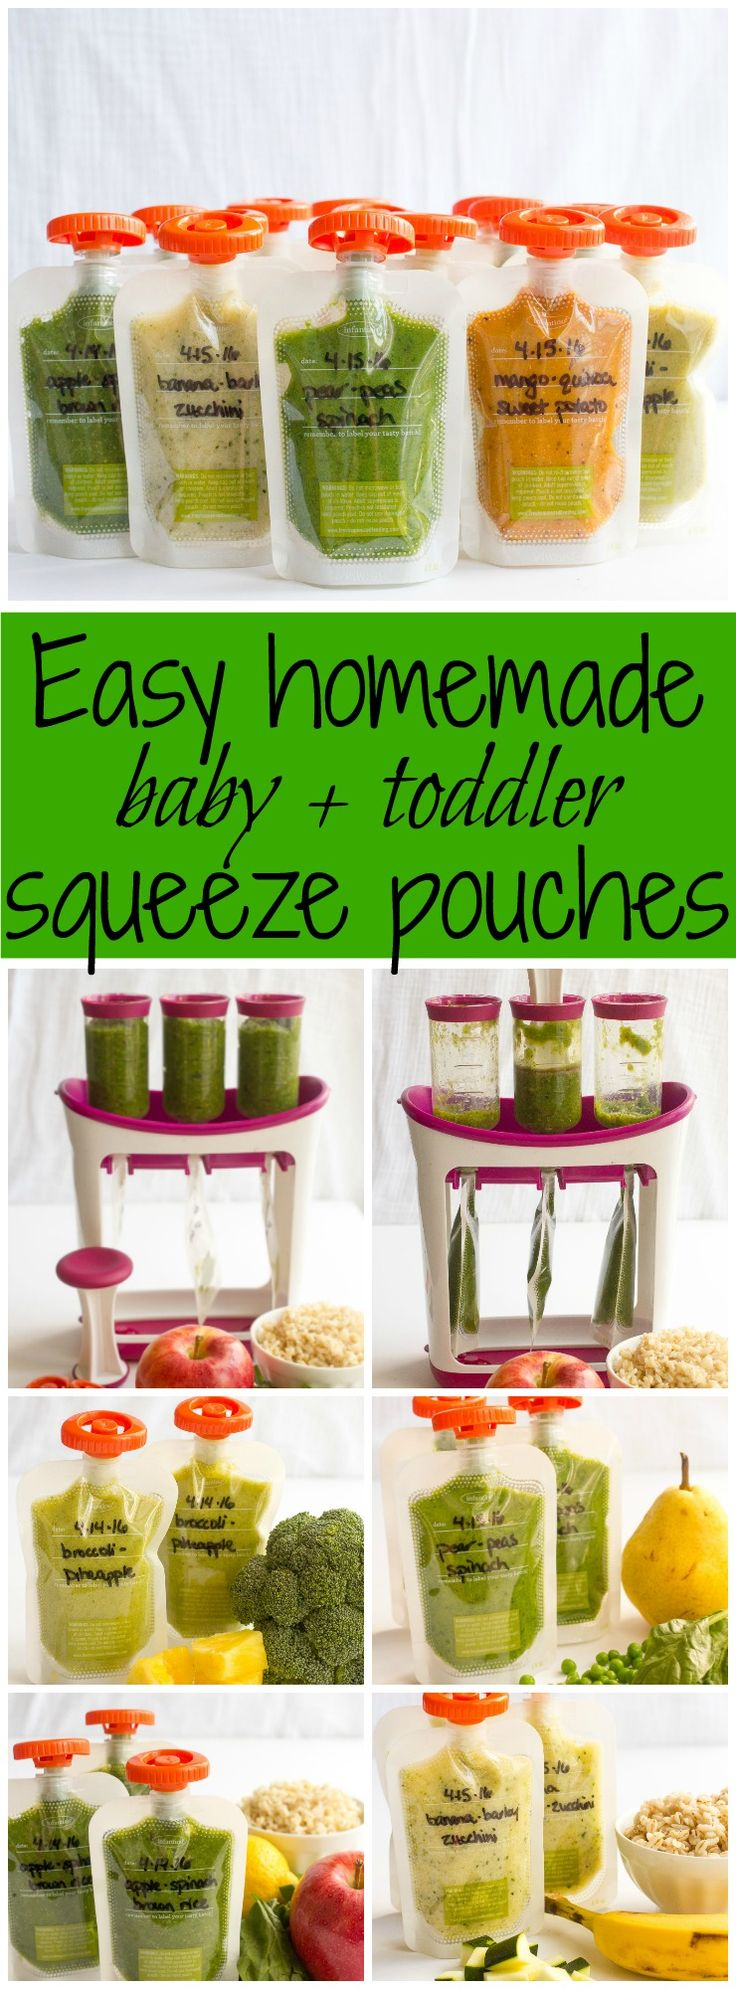 How to make homemade squeeze pouches and 5 easy recipes - great for babies, toddlers and preschool kids!   FamilyFoodontheTa...